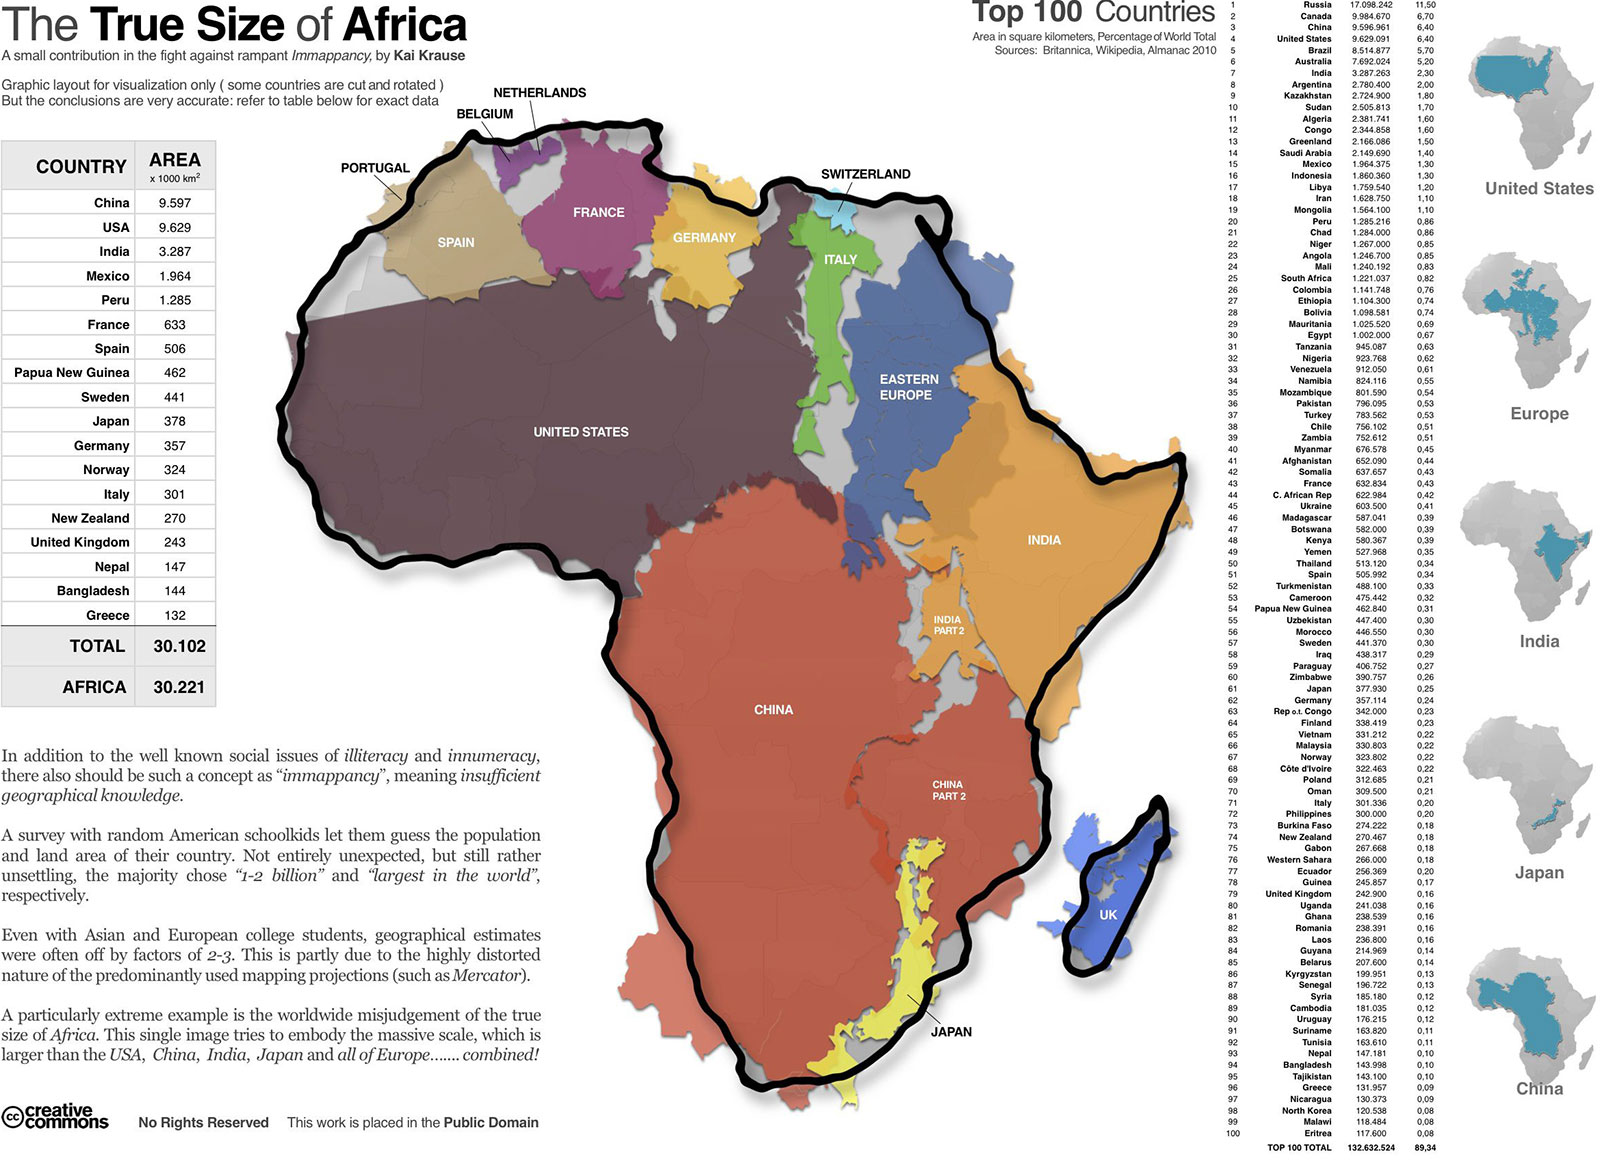 True size of Africa. Image: Kai Krause